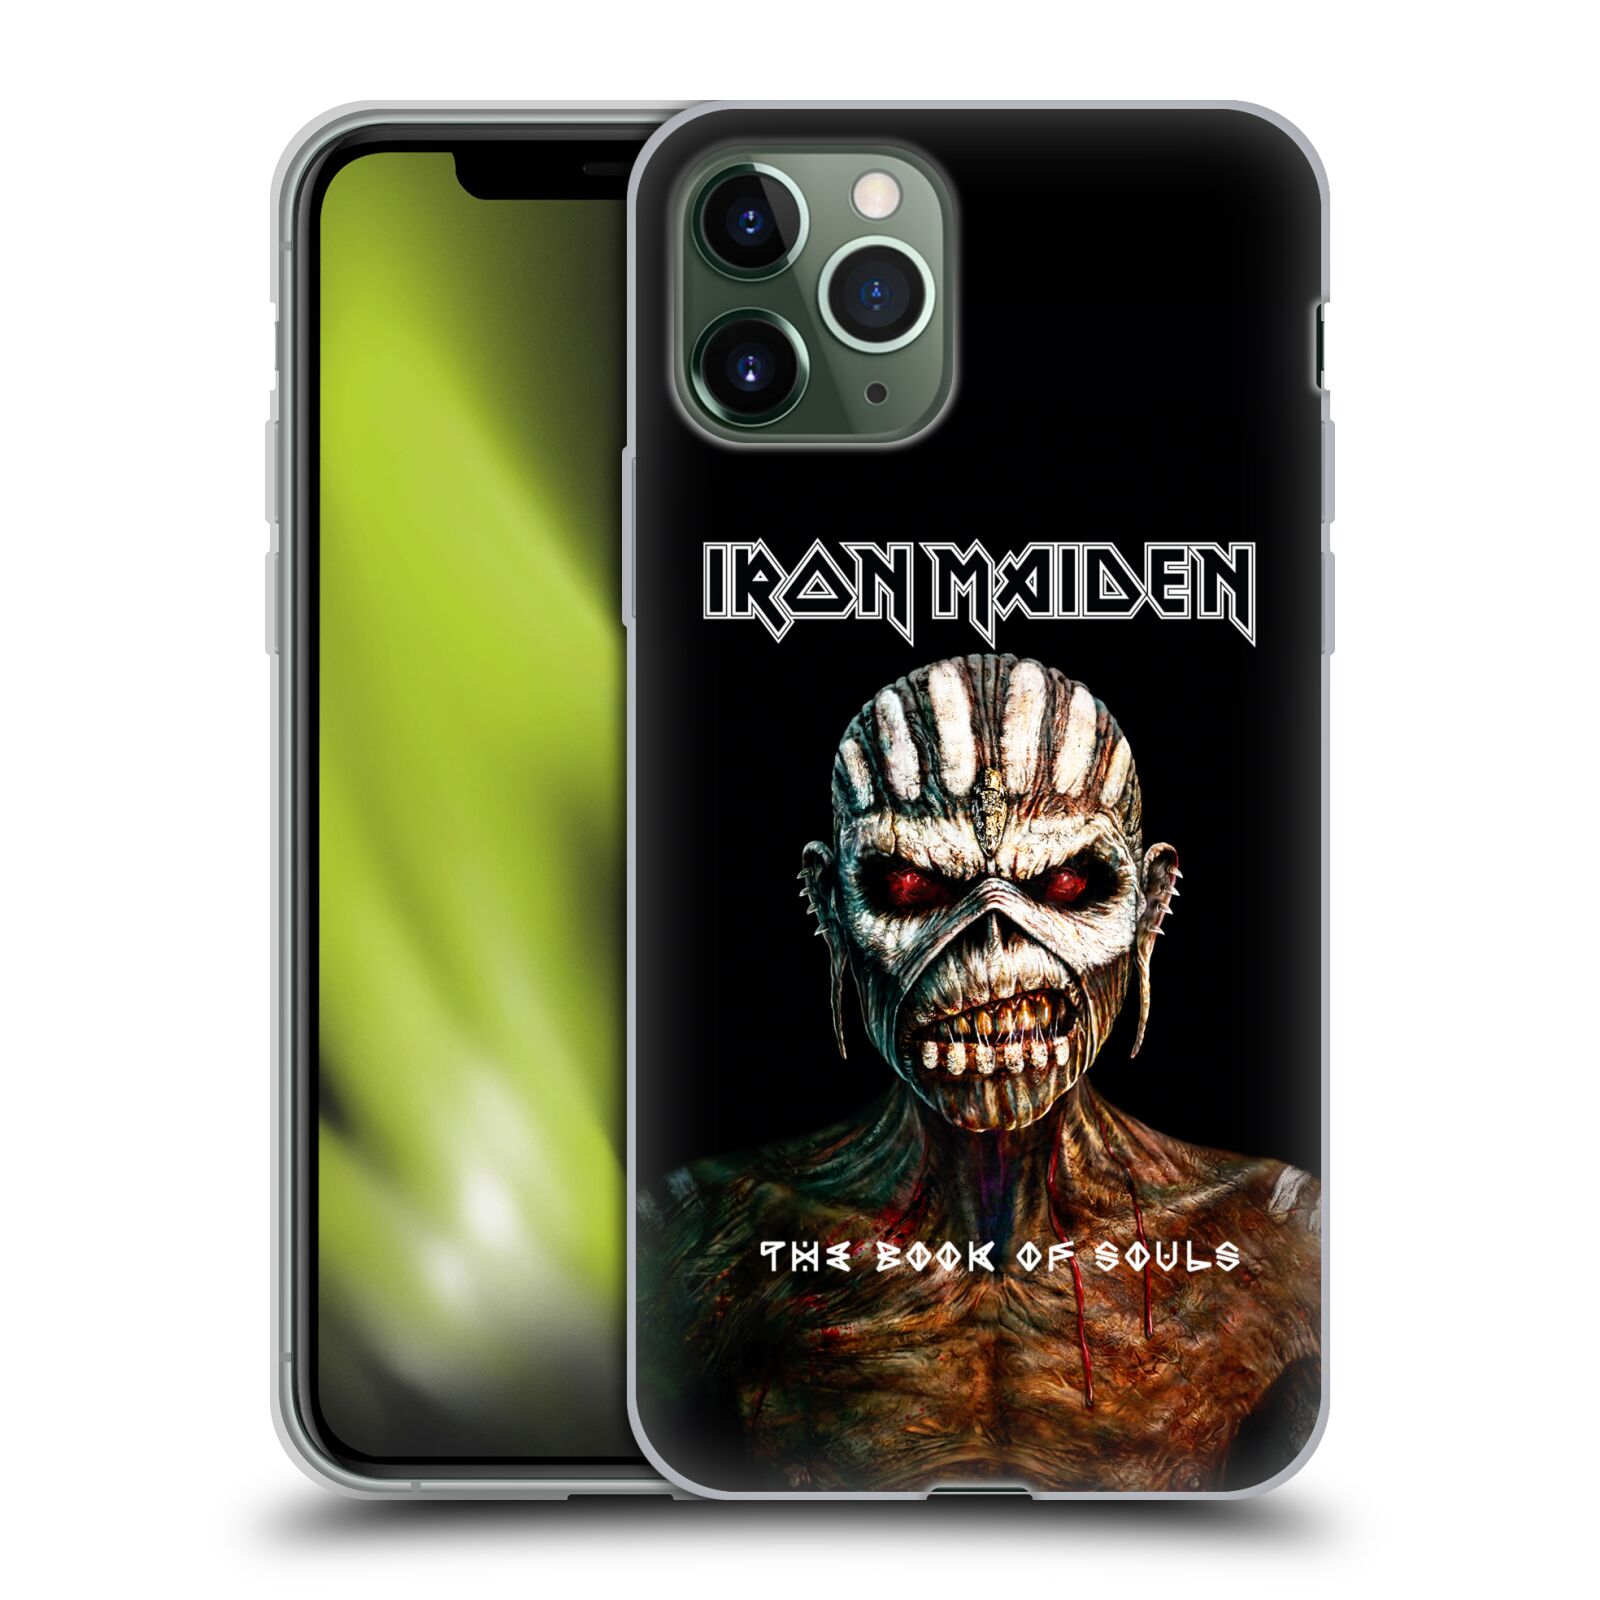 pouzdro na mobil sony | Silikonové pouzdro na mobil Apple iPhone 11 Pro - Head Case - Iron Maiden - The Book Of Souls